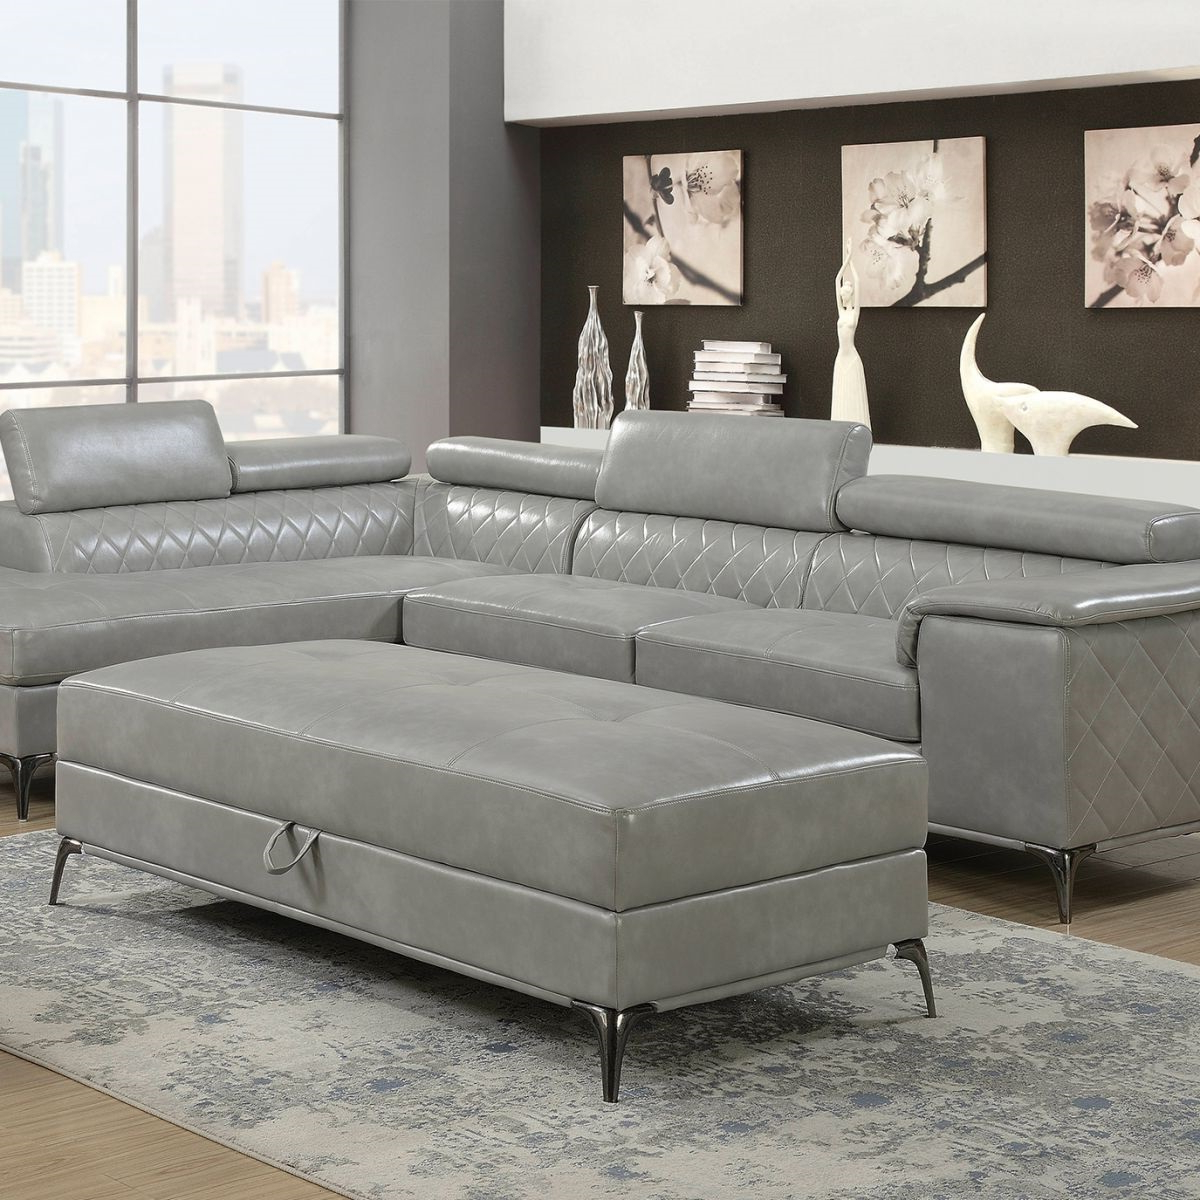 Worthington Grey 2 Pc Sectional & Ottoman (View 20 of 20)